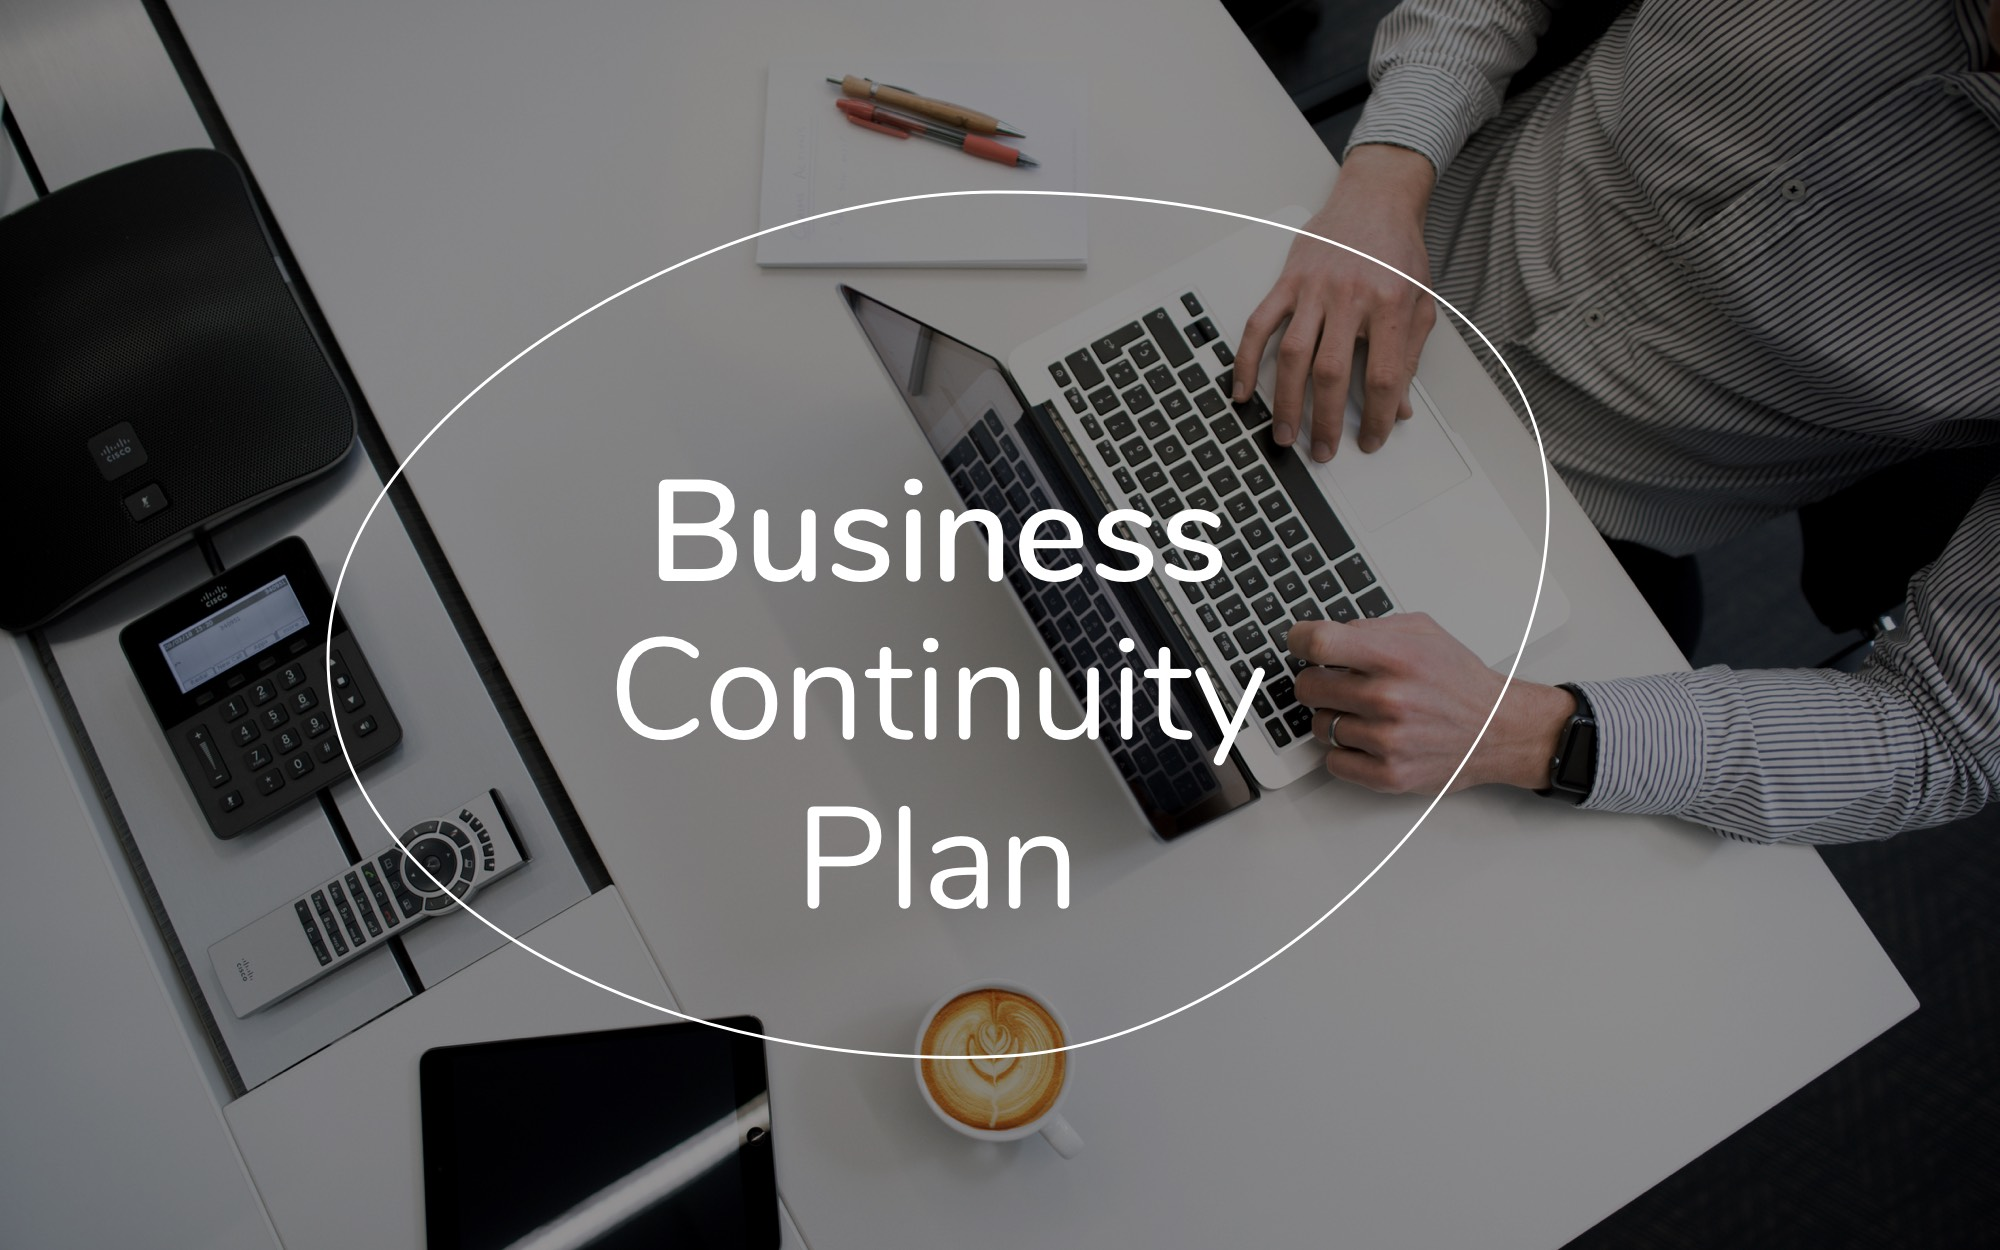 Business continuity plan template free pdf ppt download slidebean business continuity plan template free pdf amp ppt download cheaphphosting Images